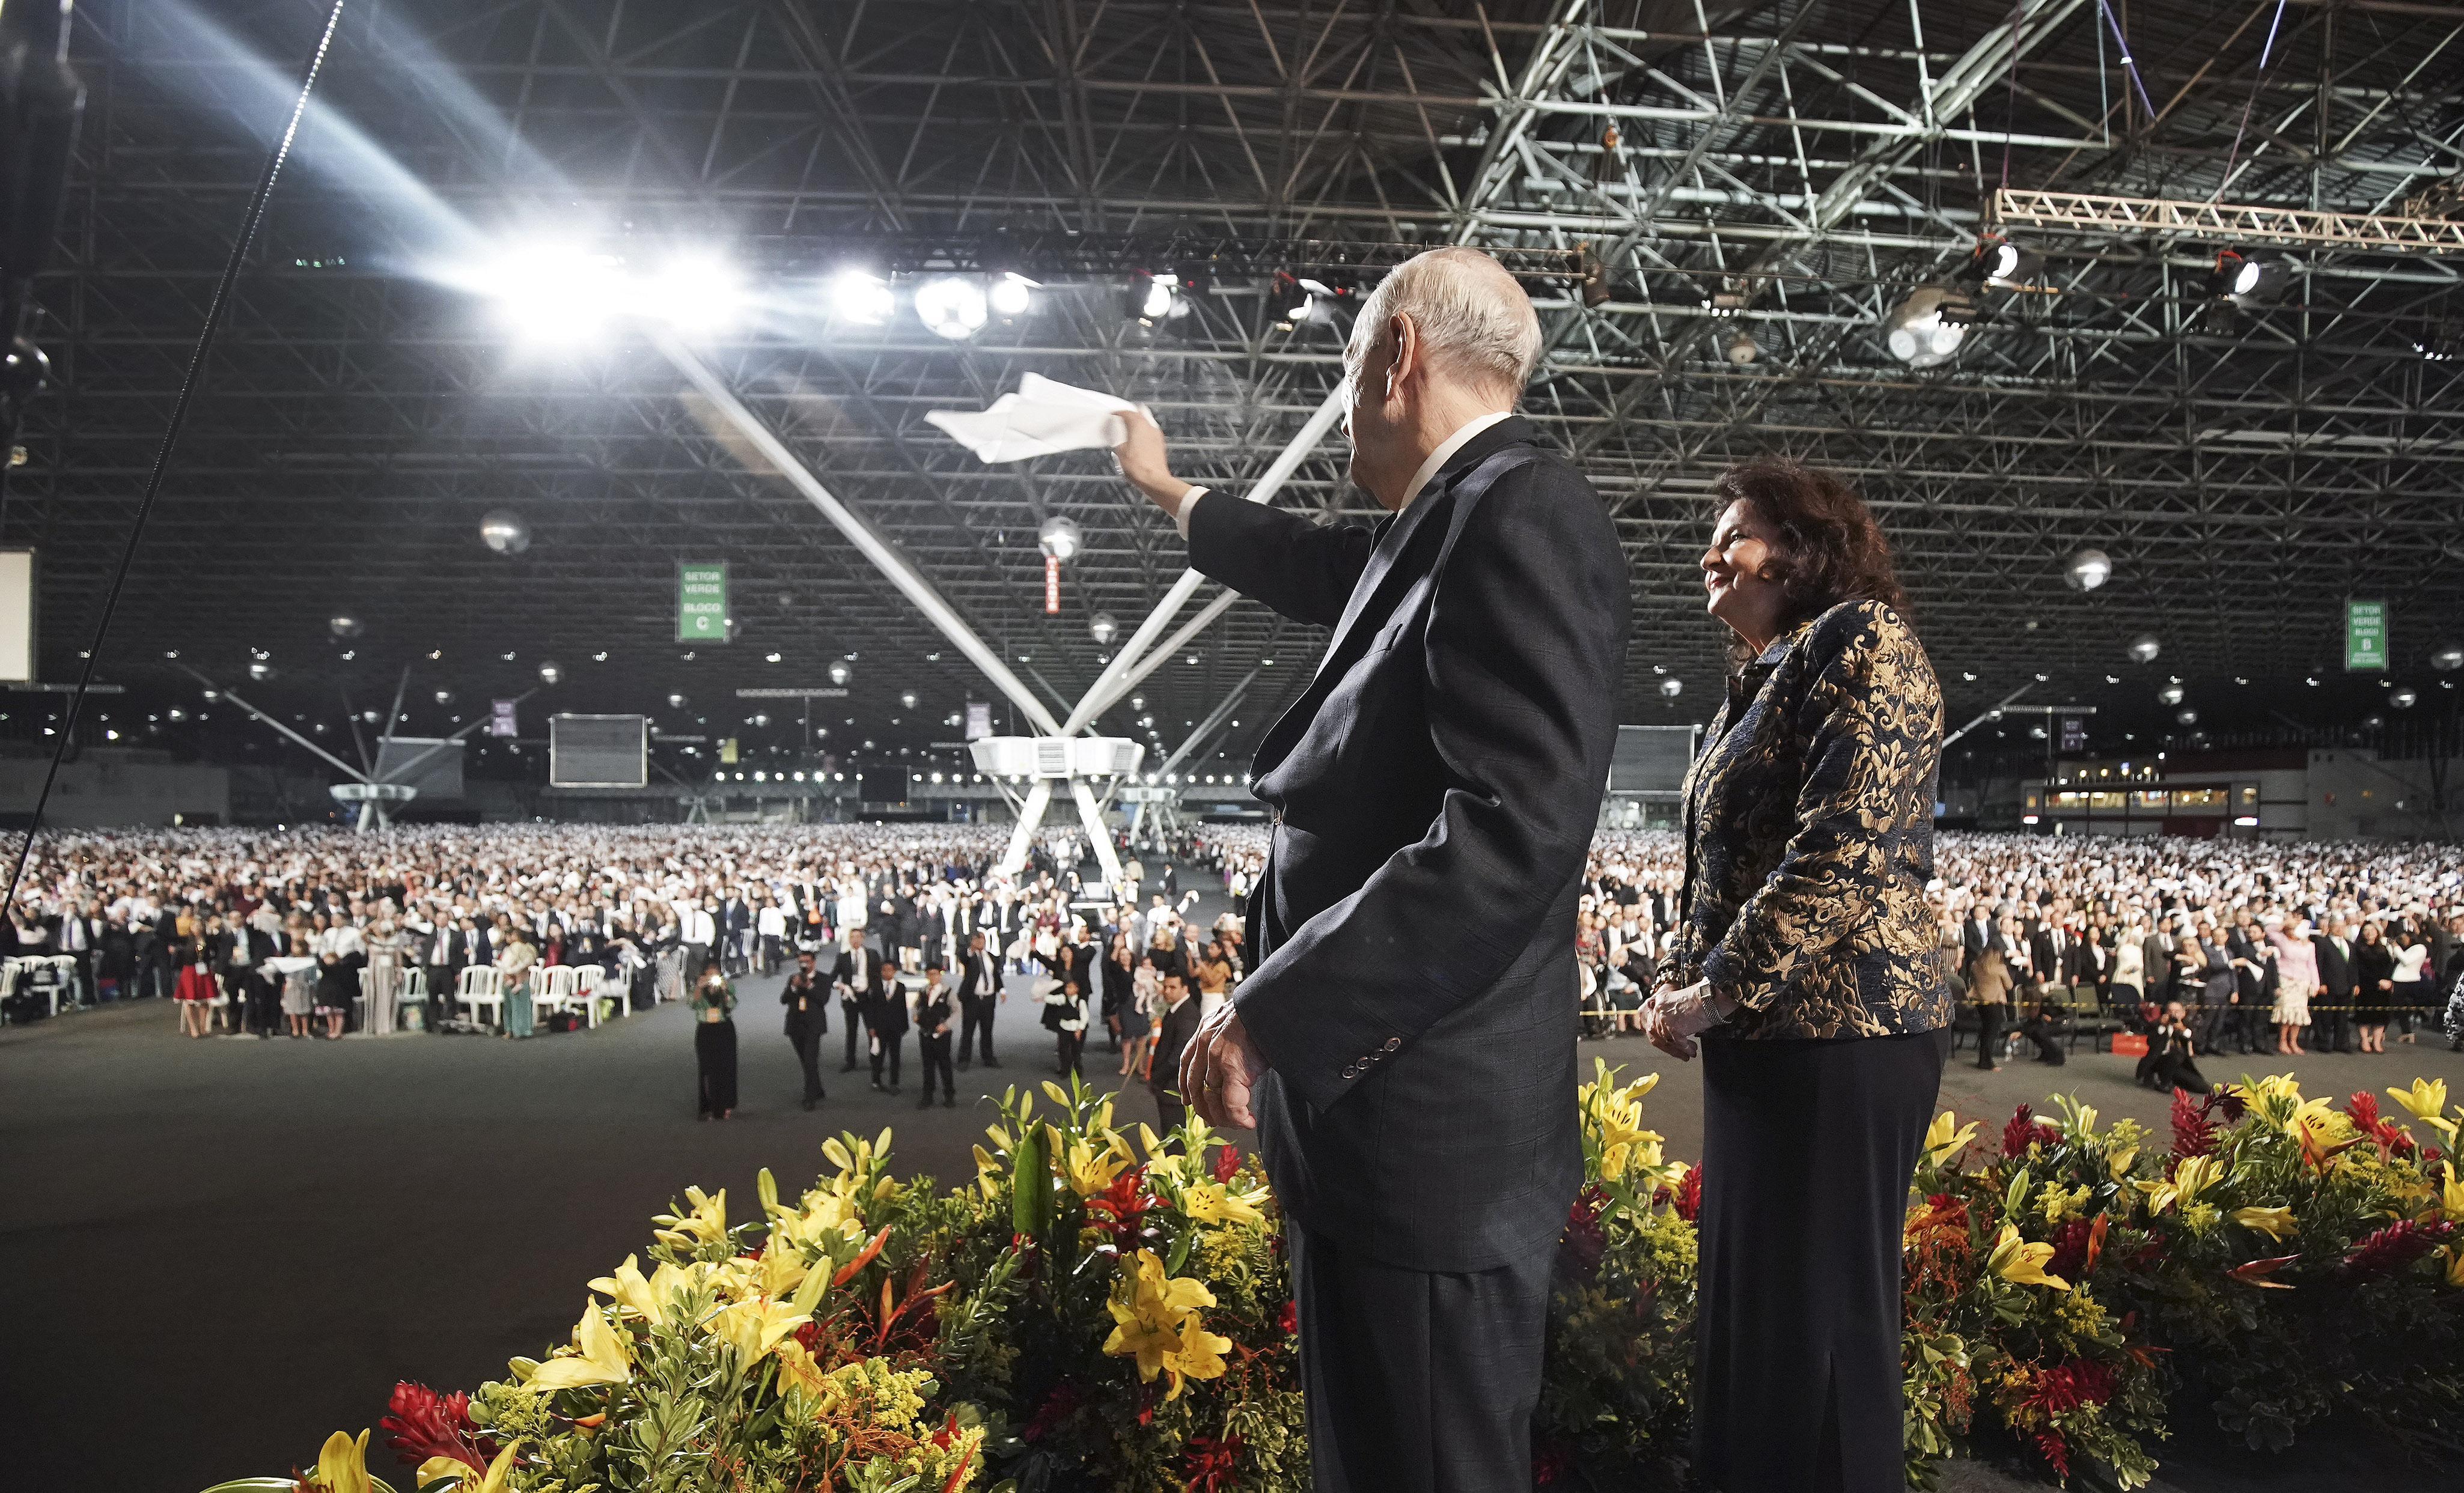 President Russell M. Nelson of The Church of Jesus Christ of Latter-day Saints and his wife, Sister Wendy Nelson, wave to attendees after a devotional in Sao Paulo, Brazil, on Sunday, Sept. 1, 2019.